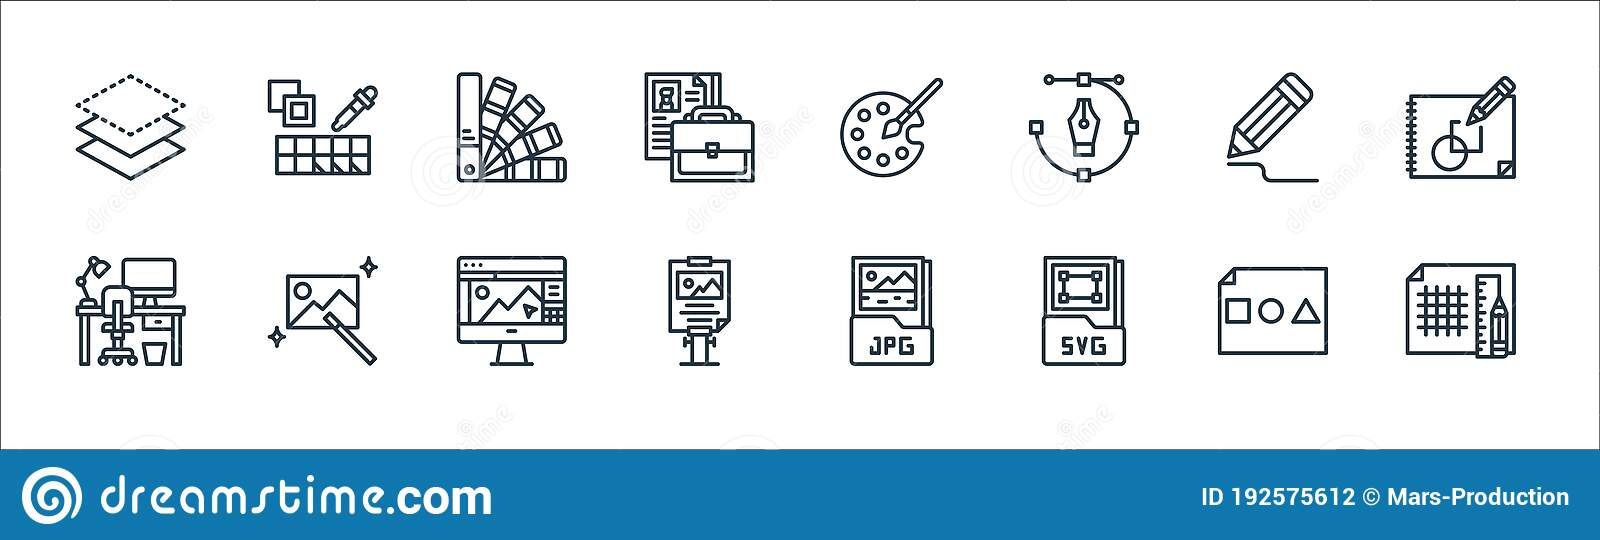 Icons Svg Stock Illustrations 478 Icons Svg Stock Illustrations Vectors Clipart Dreamstime